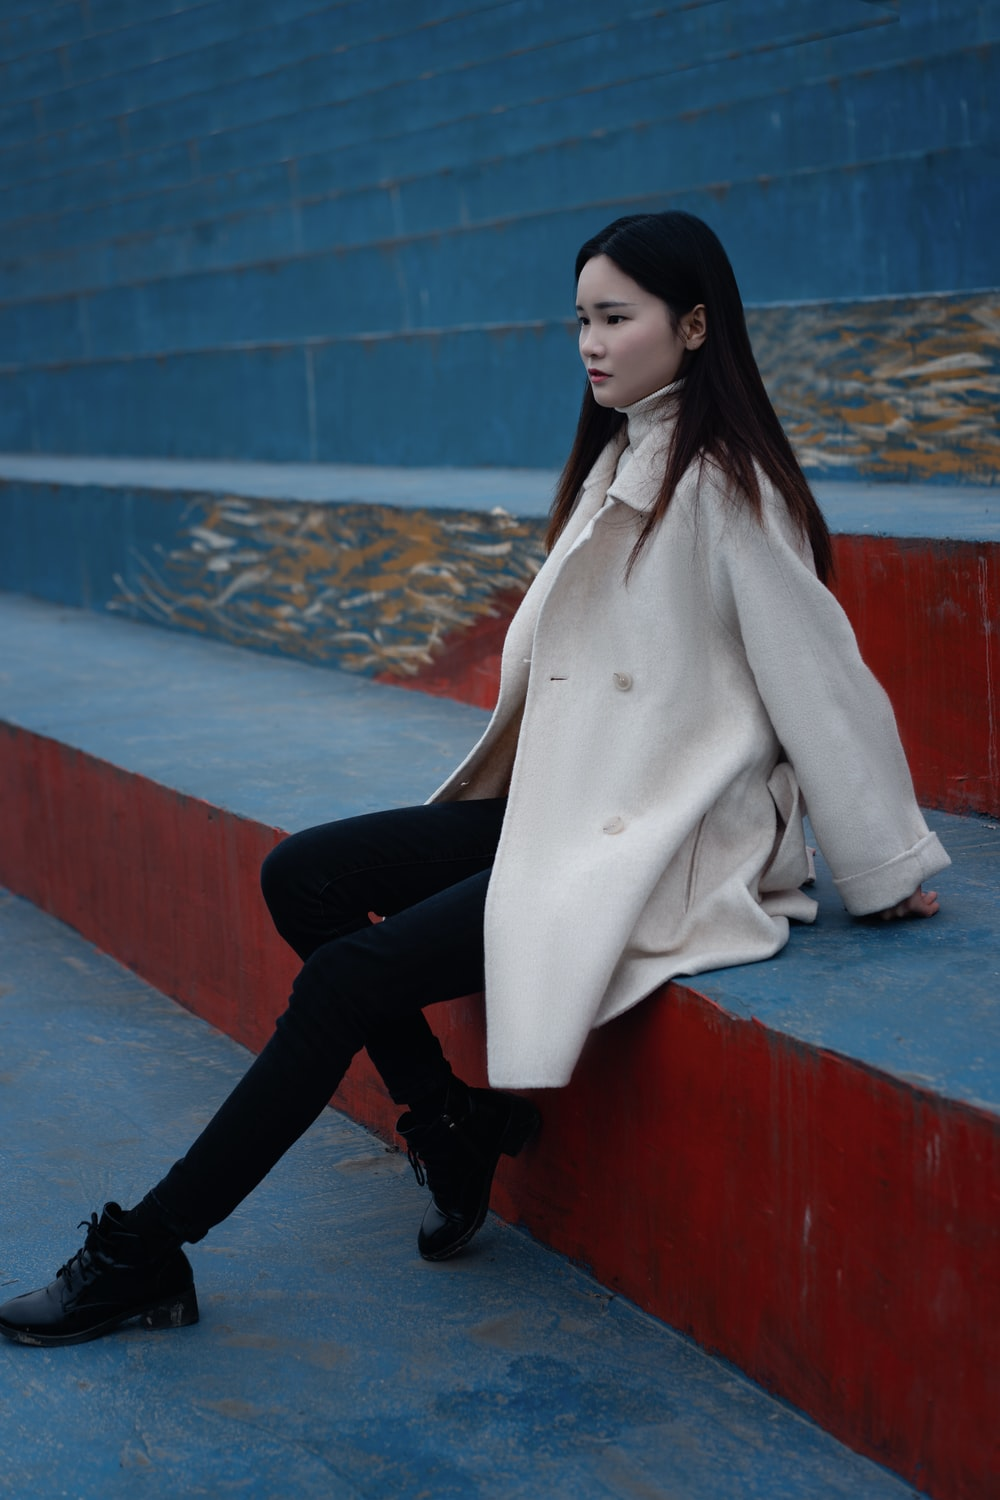 woman in white coat and black pants sitting on red concrete bench